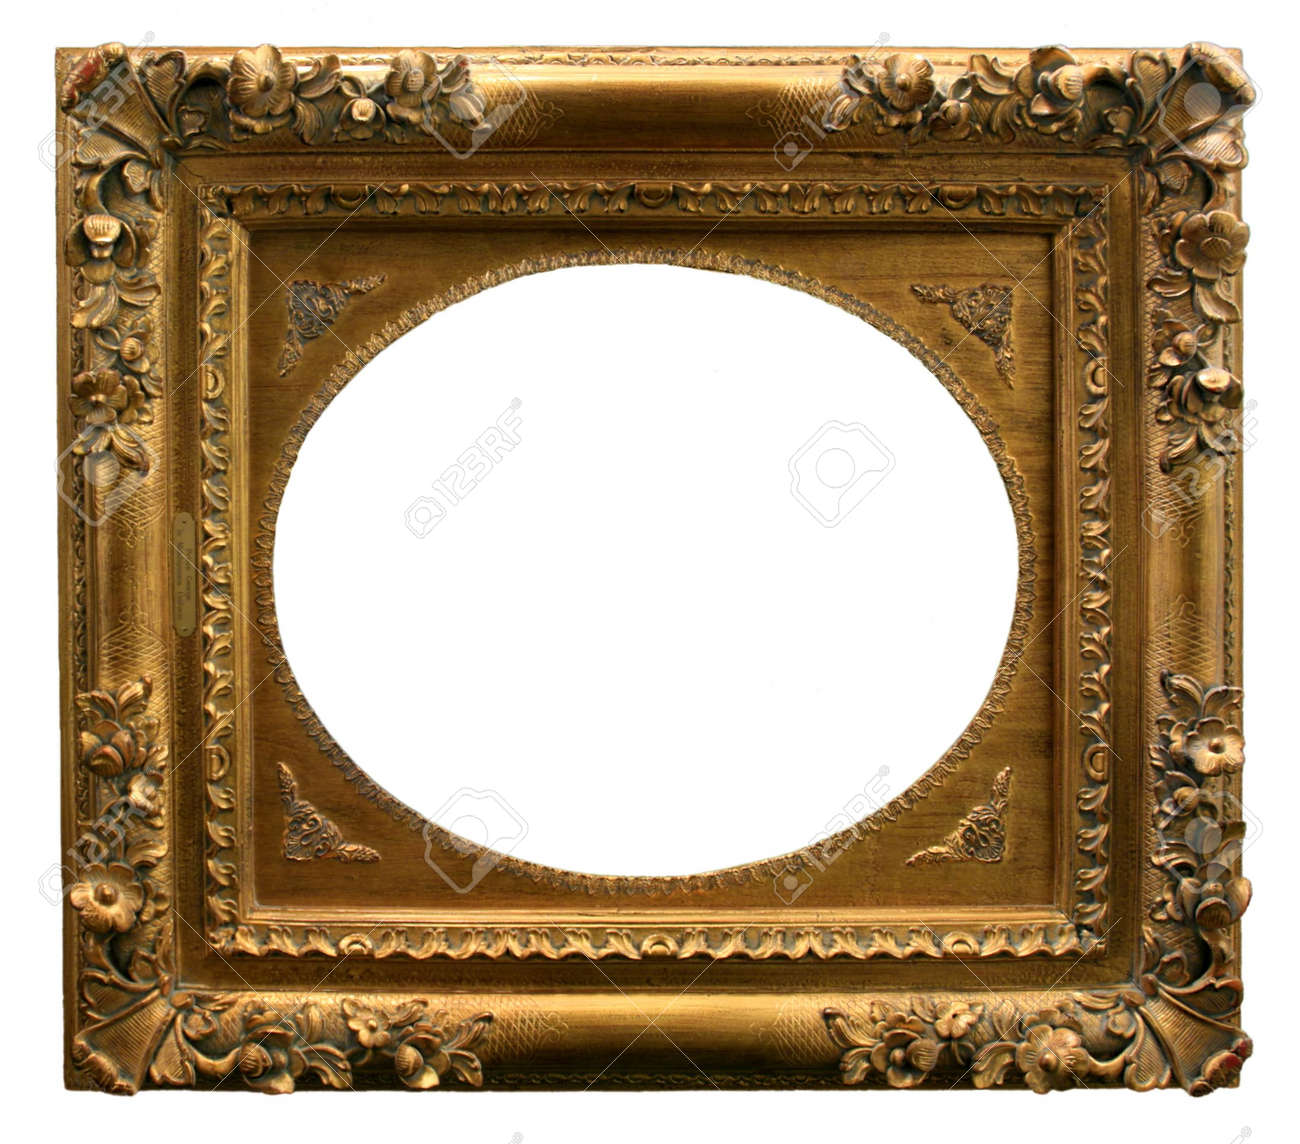 gilded gold picture frame ready for your insertion stock photo 5870532